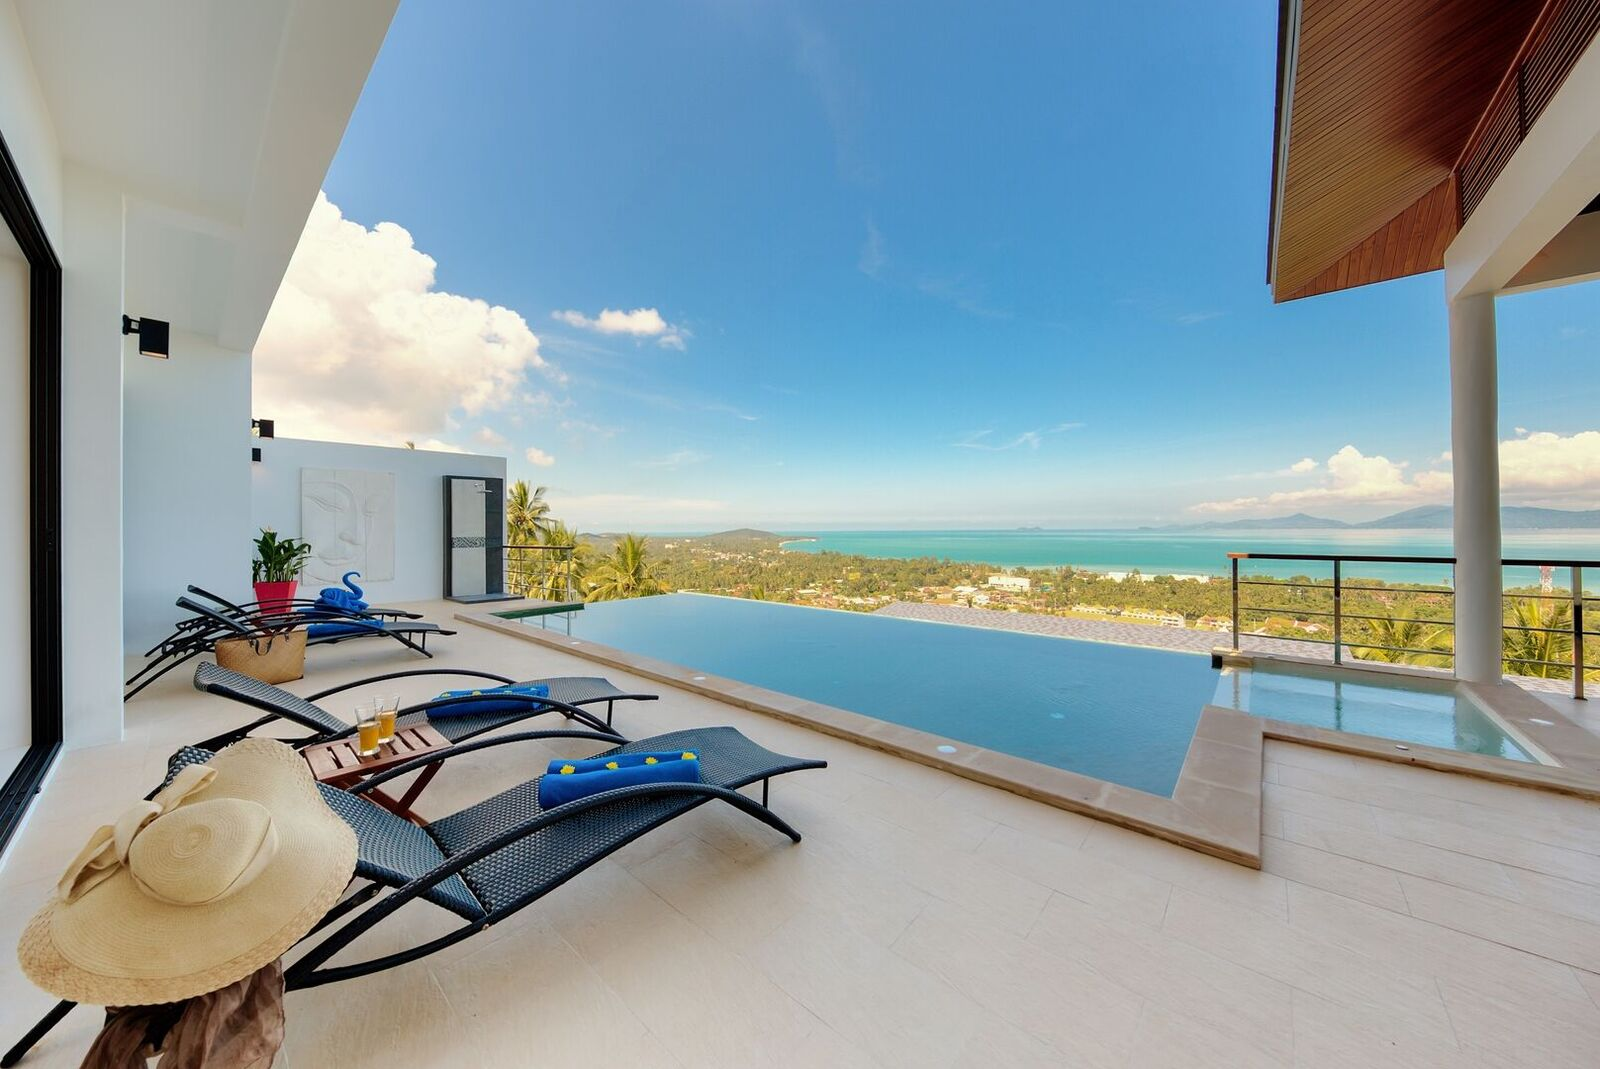 4 Bedroom Sea View Villa with Private Pool at Maenam Koh Samui